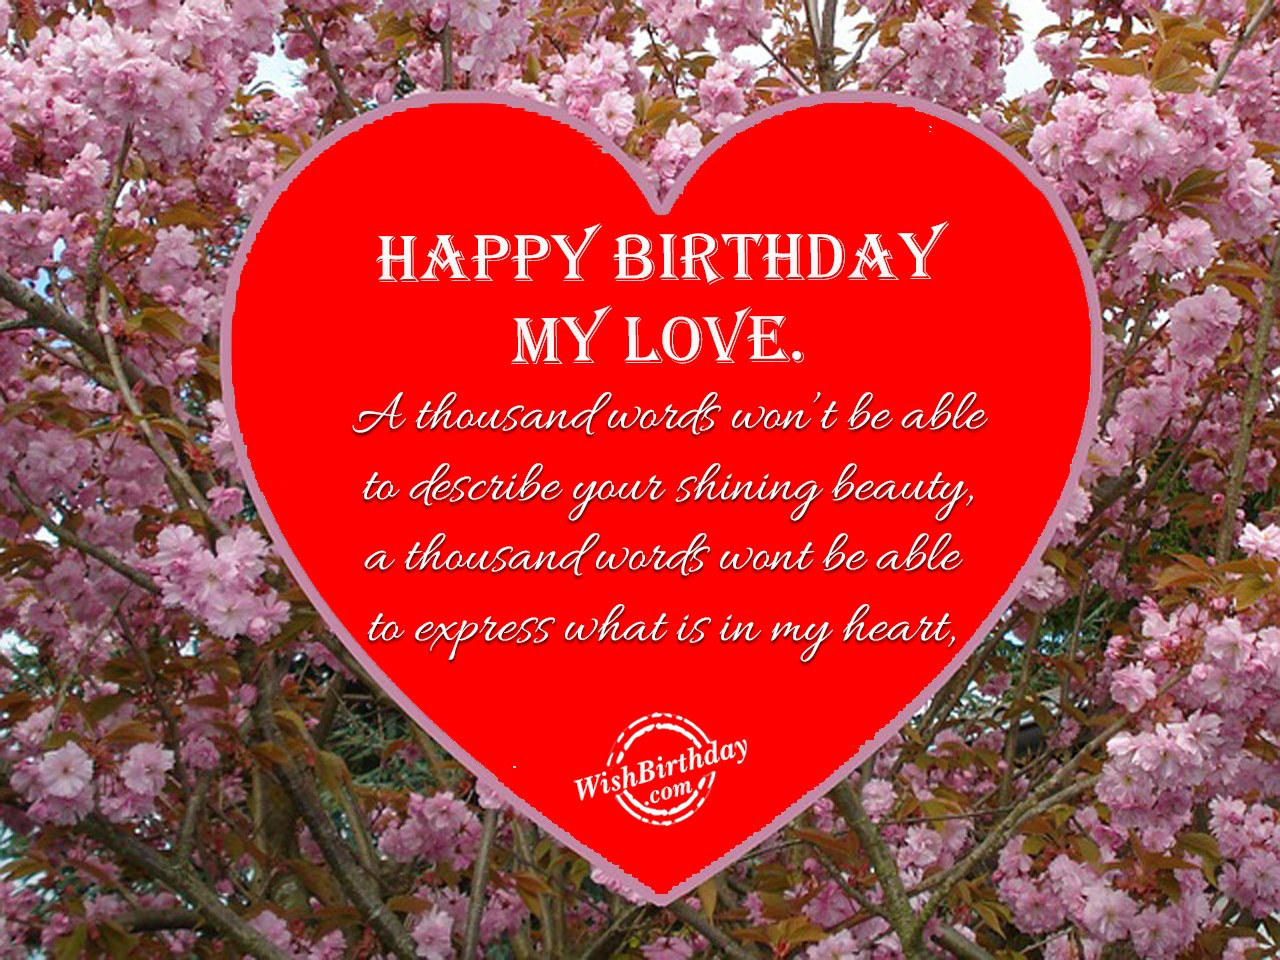 Best ideas about Happy Birthday Wishes For Wife . Save or Pin Birthday Wishes for Wife Birthday Now.